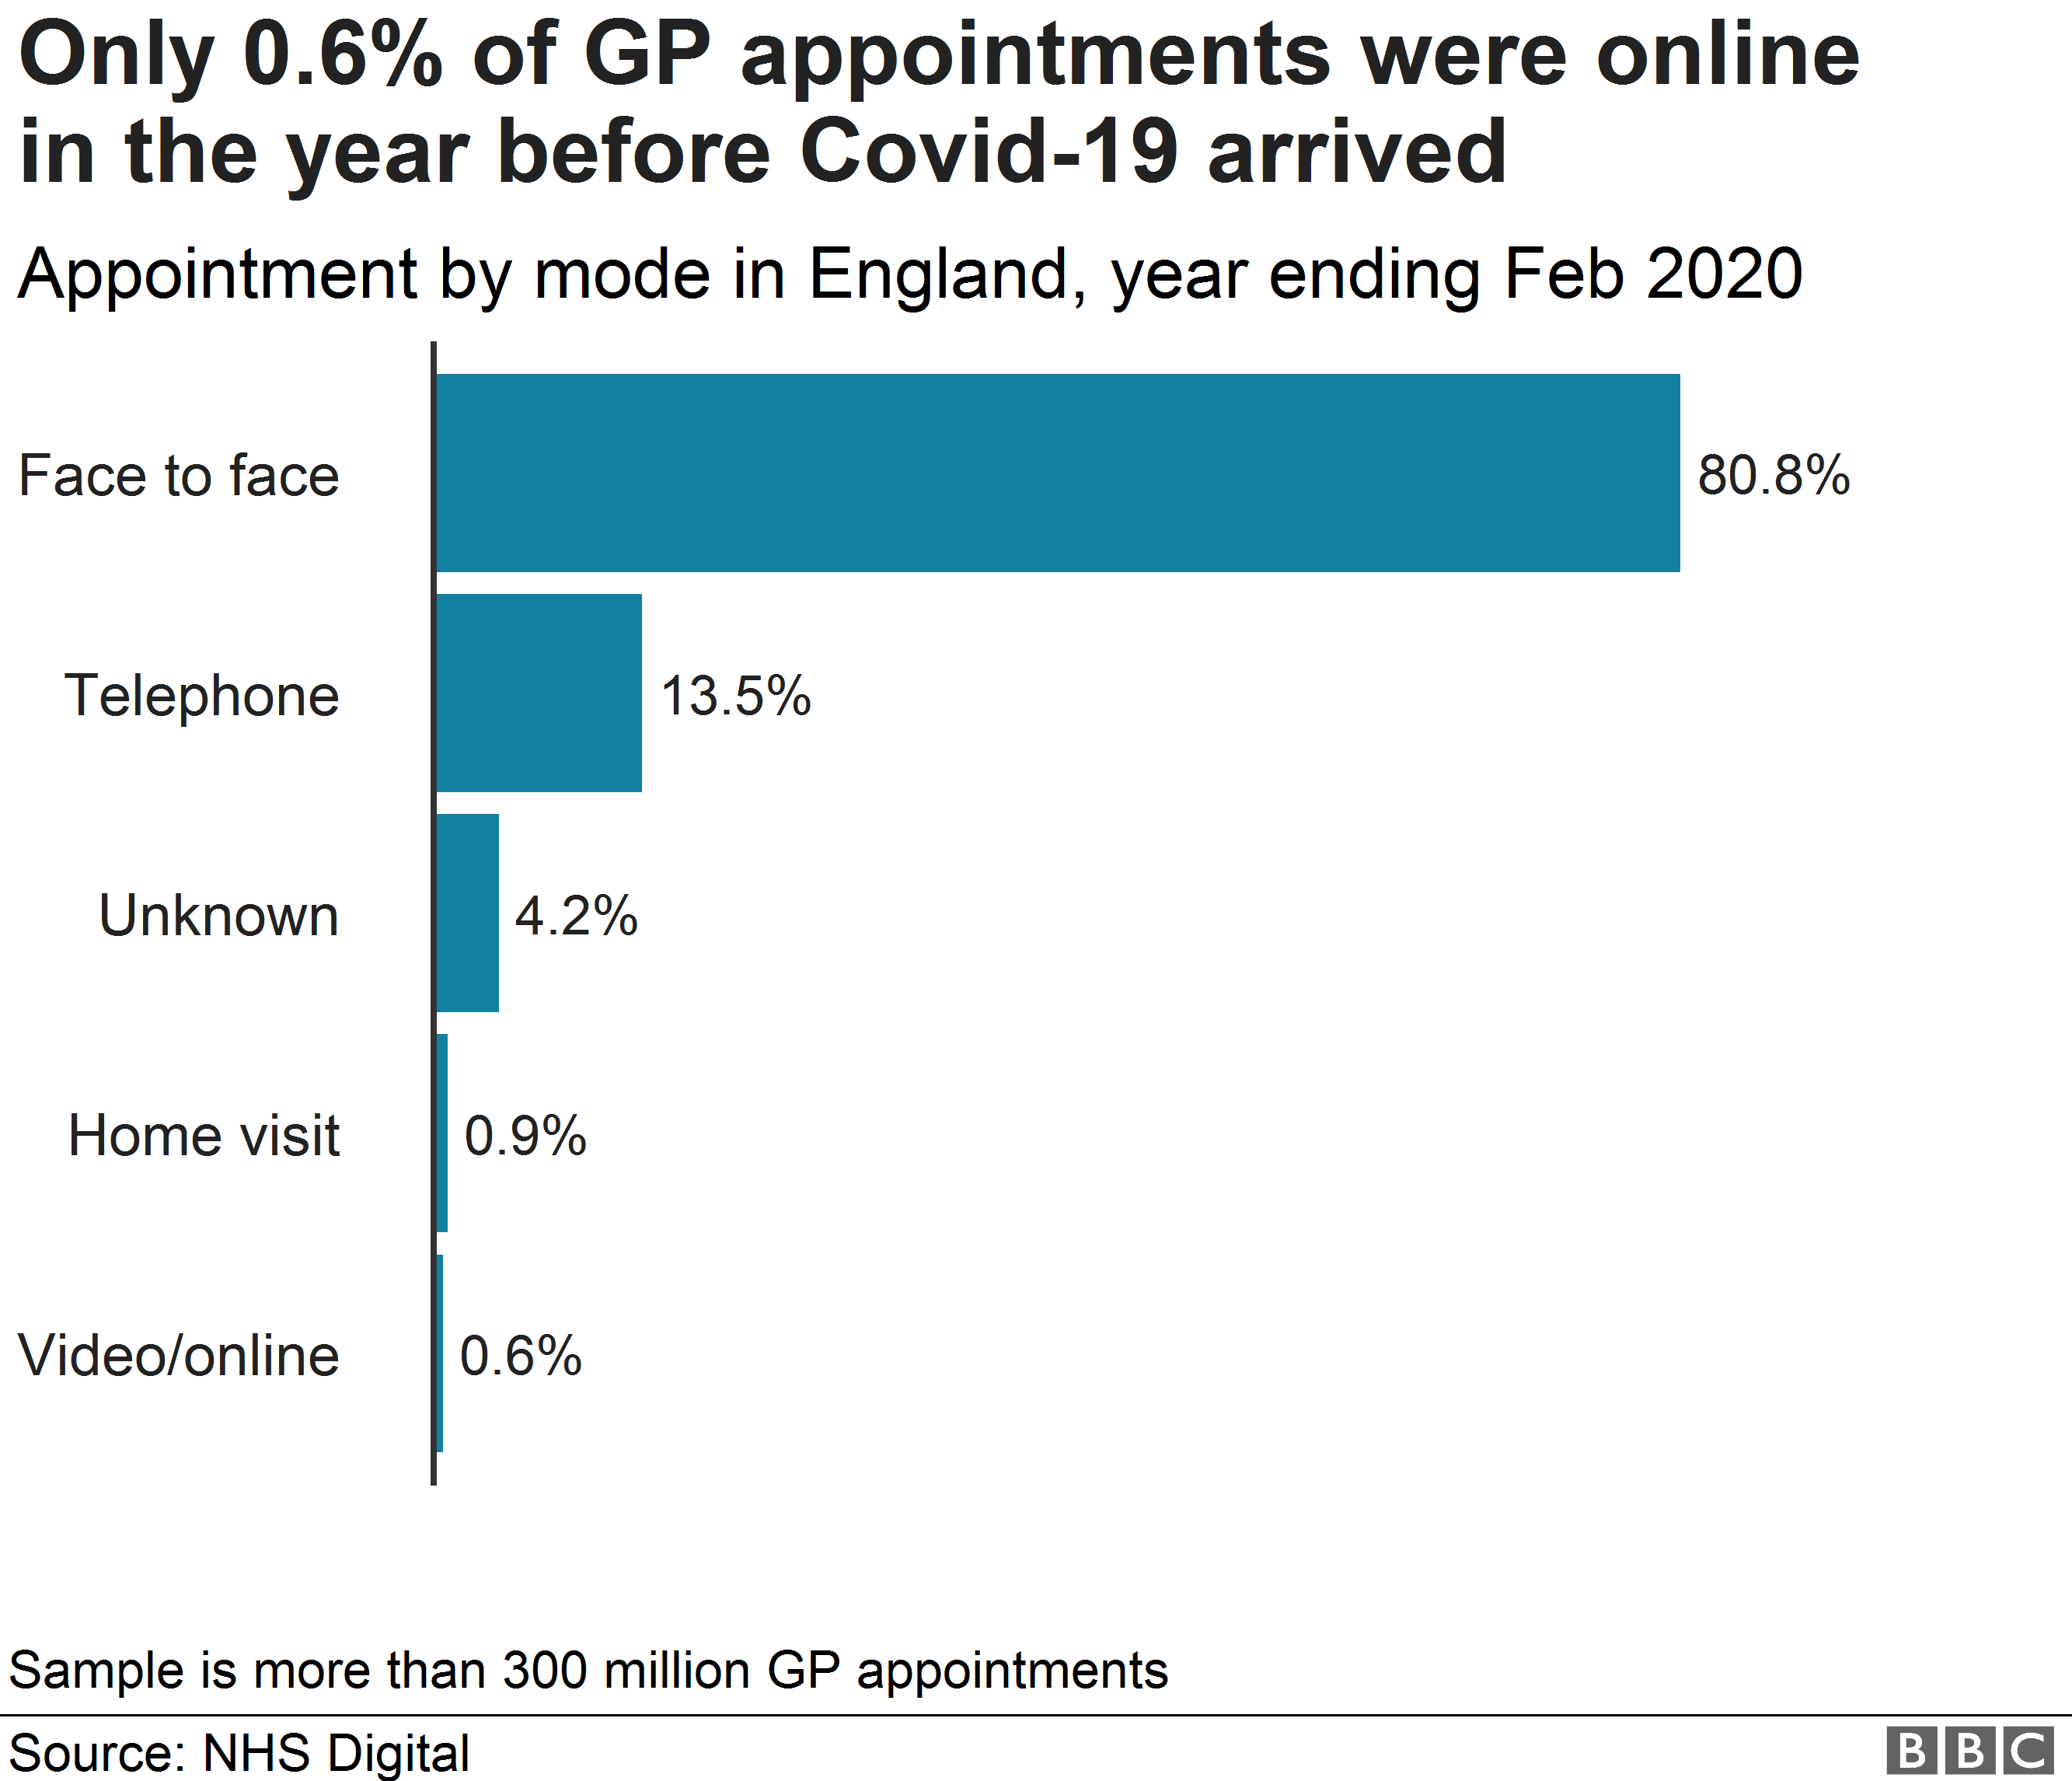 Chart showing how most appointments were face to face